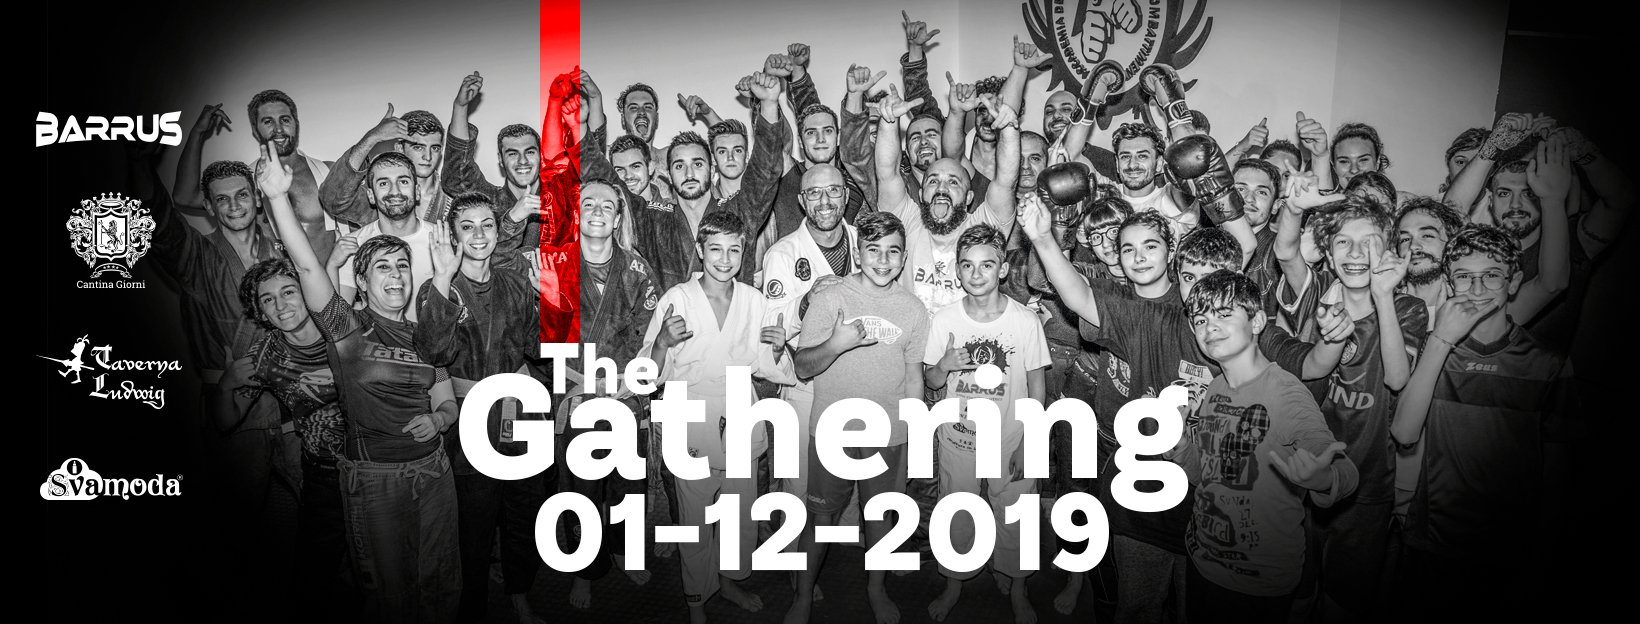 The Gathering 2019 - Kickboxing, MMA, Brazilian Jiu Jitsu